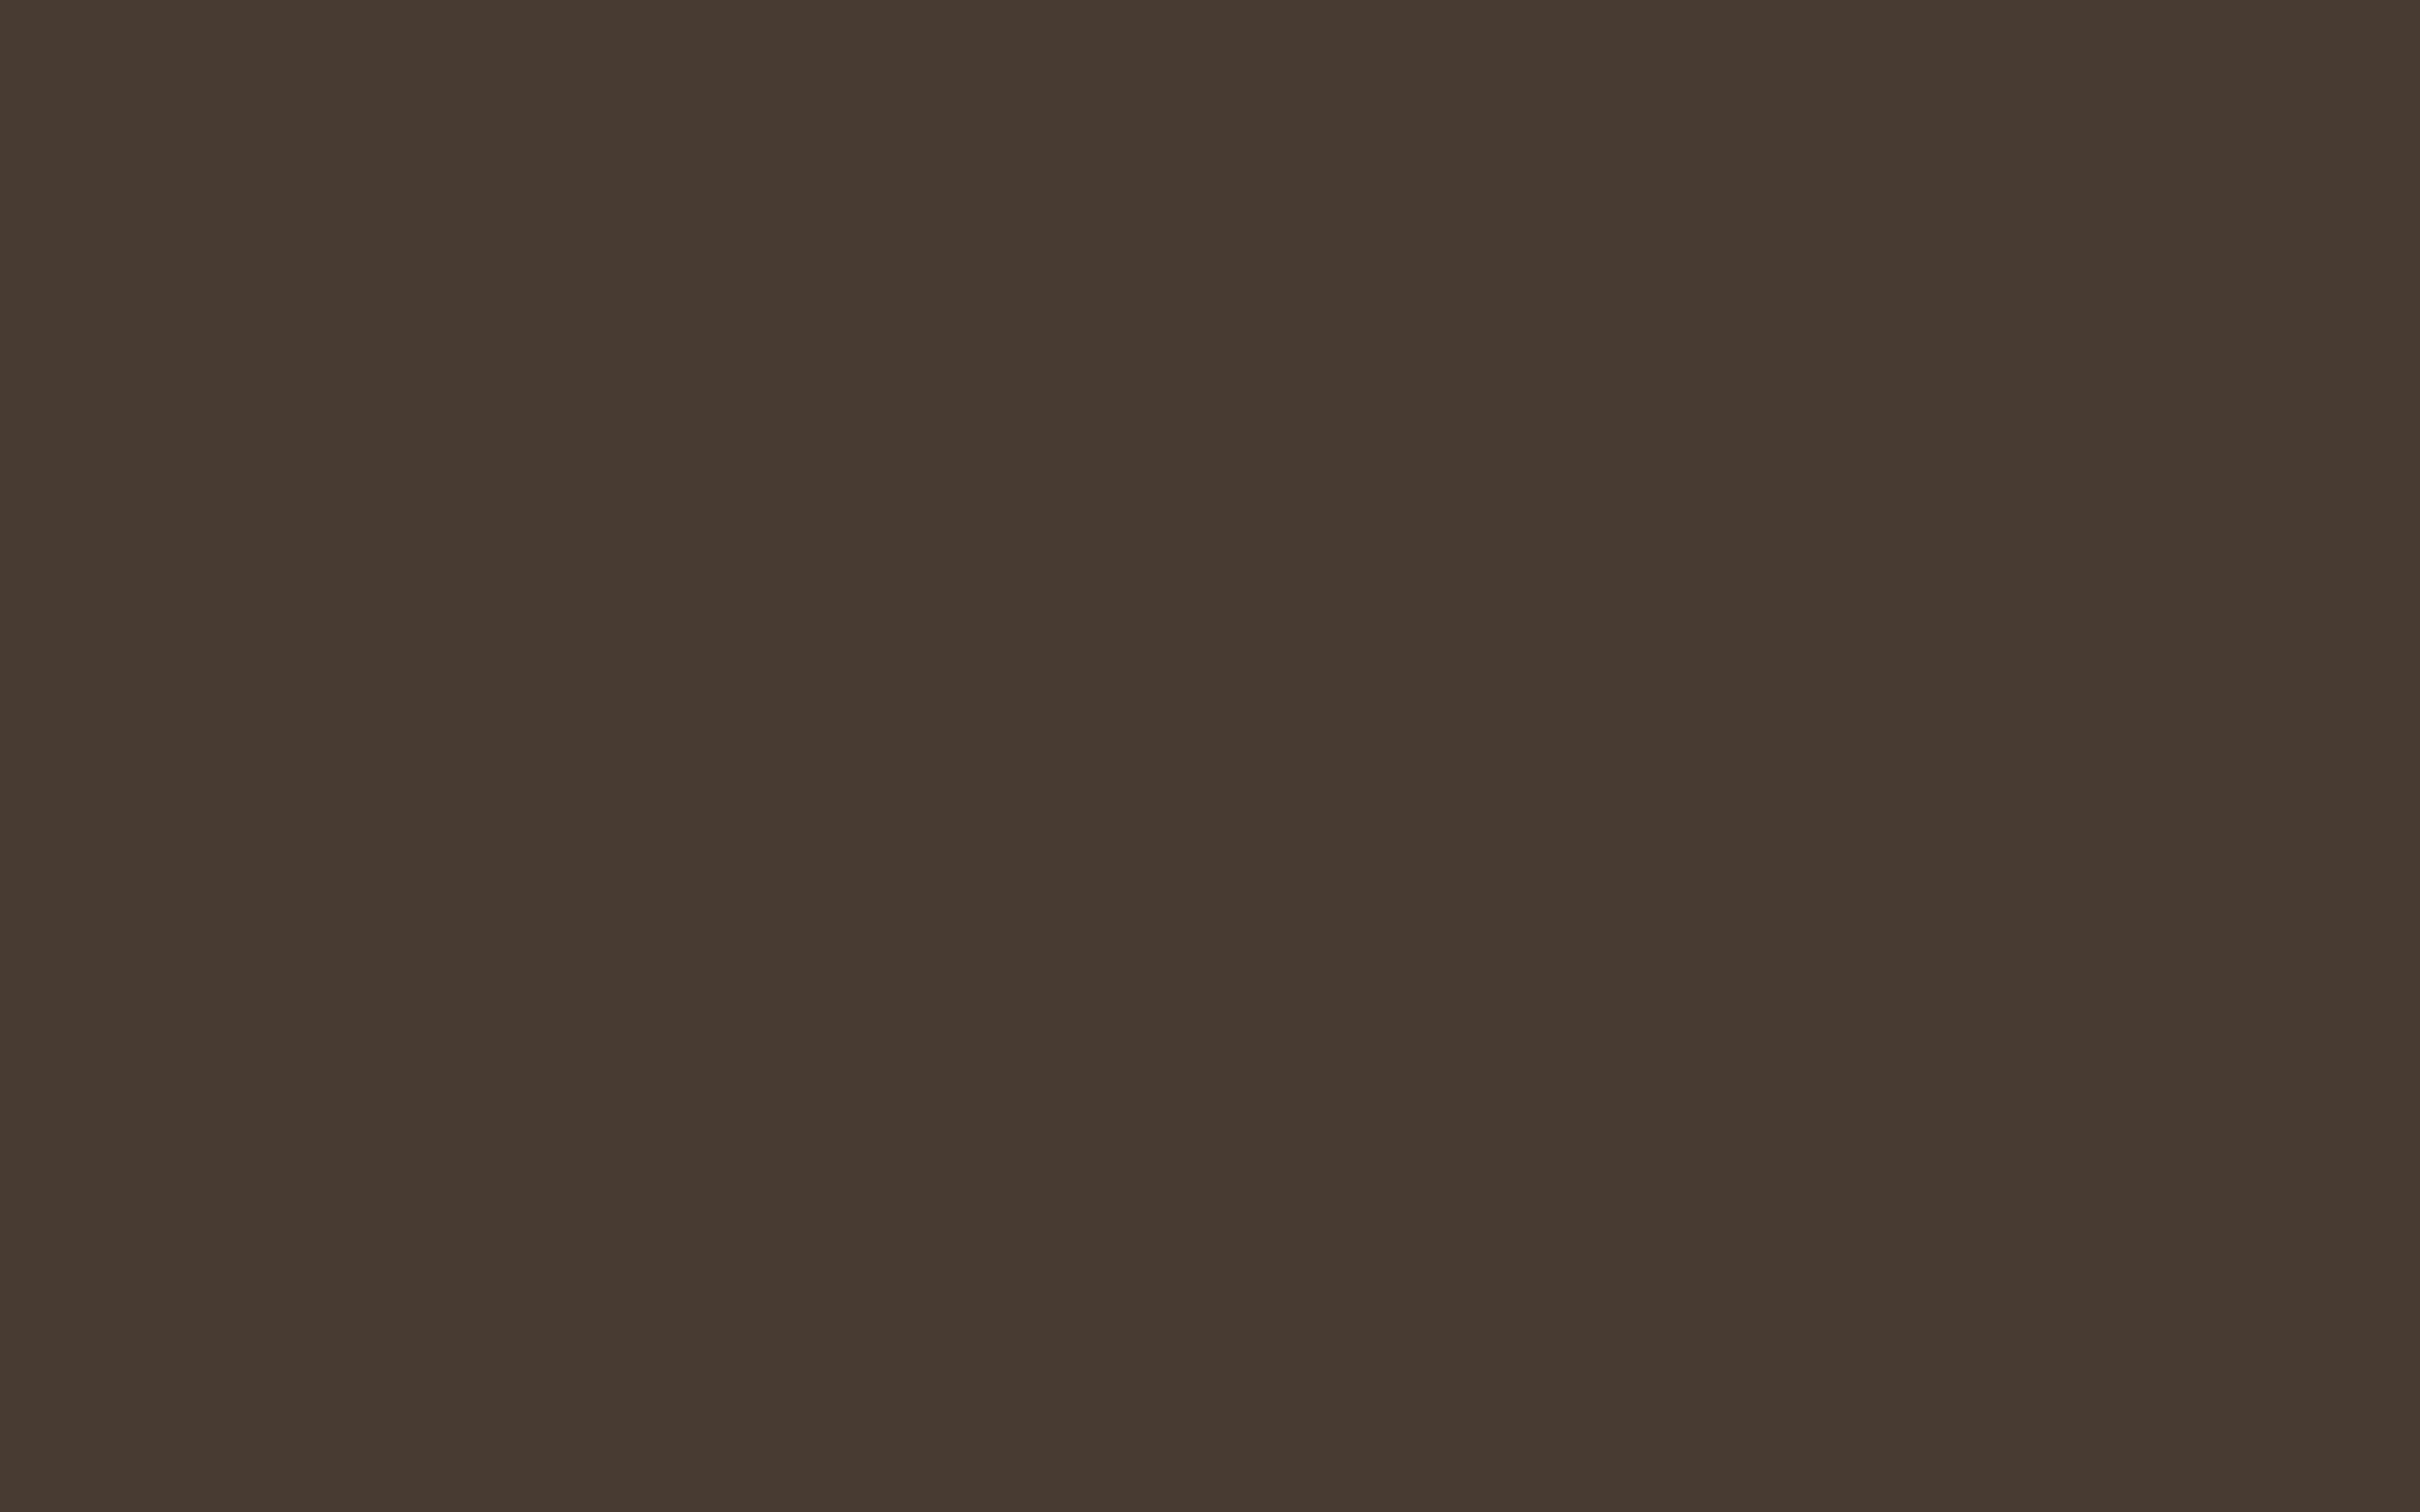 2560x1600 Dark Taupe Solid Color Background